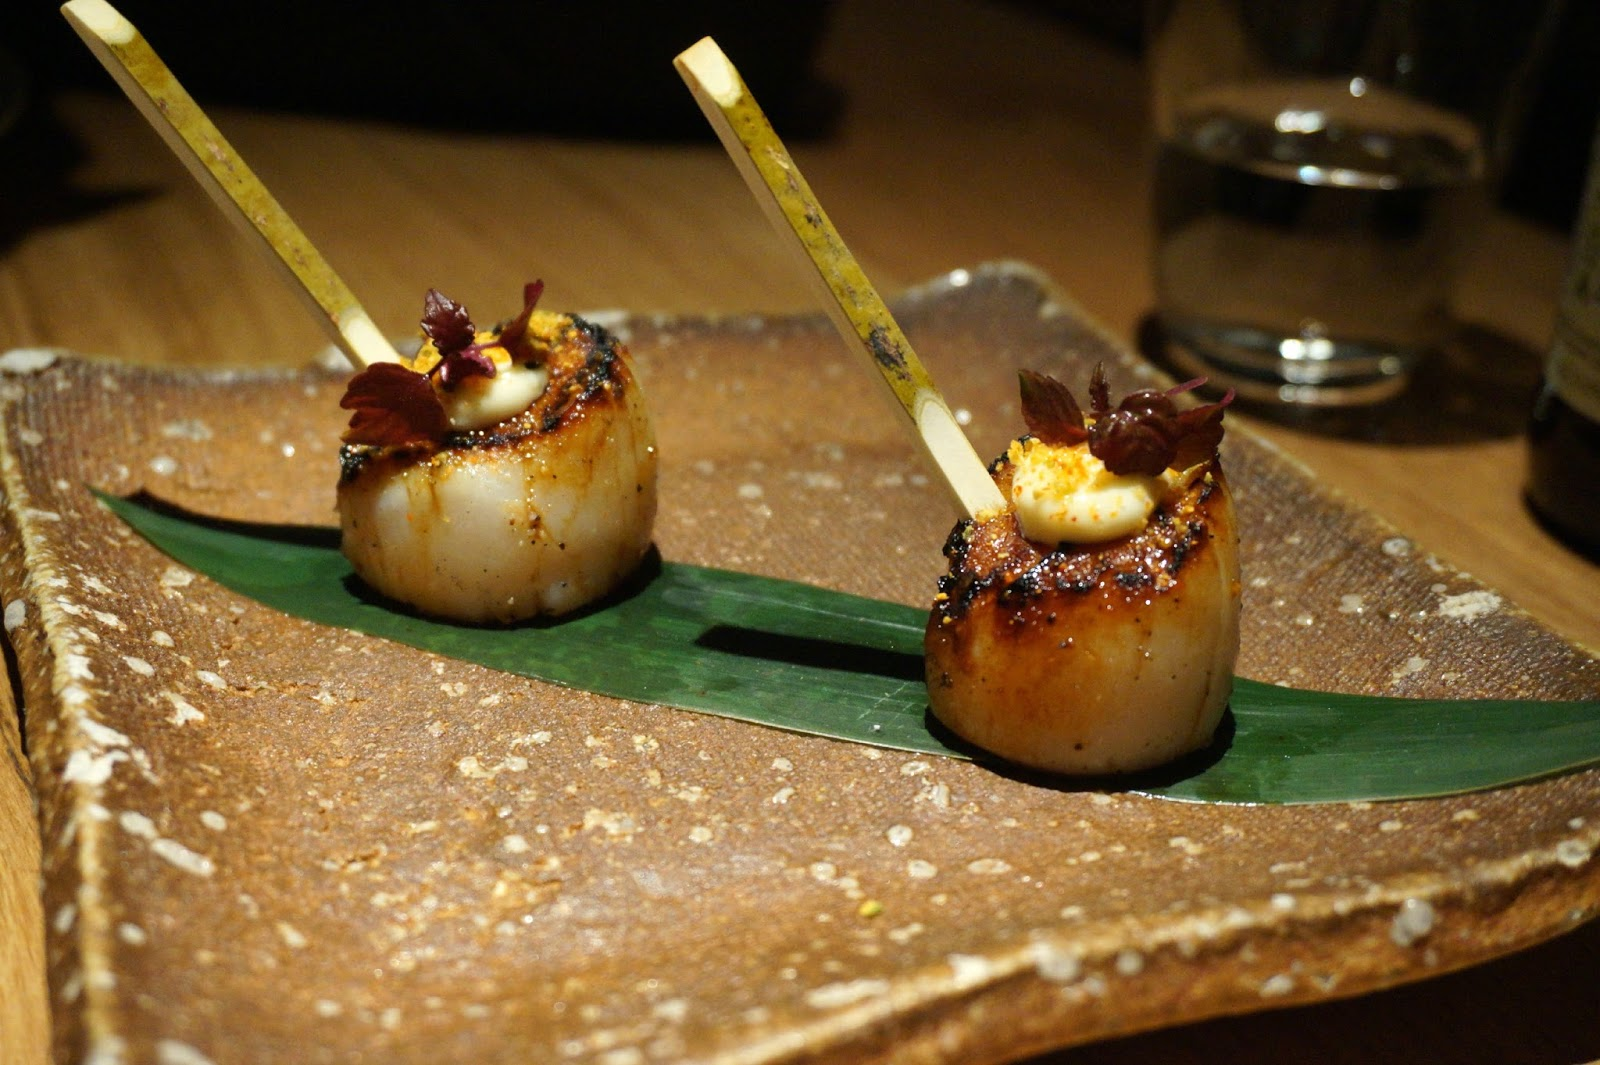 scallop skewers with wasabi and shiso